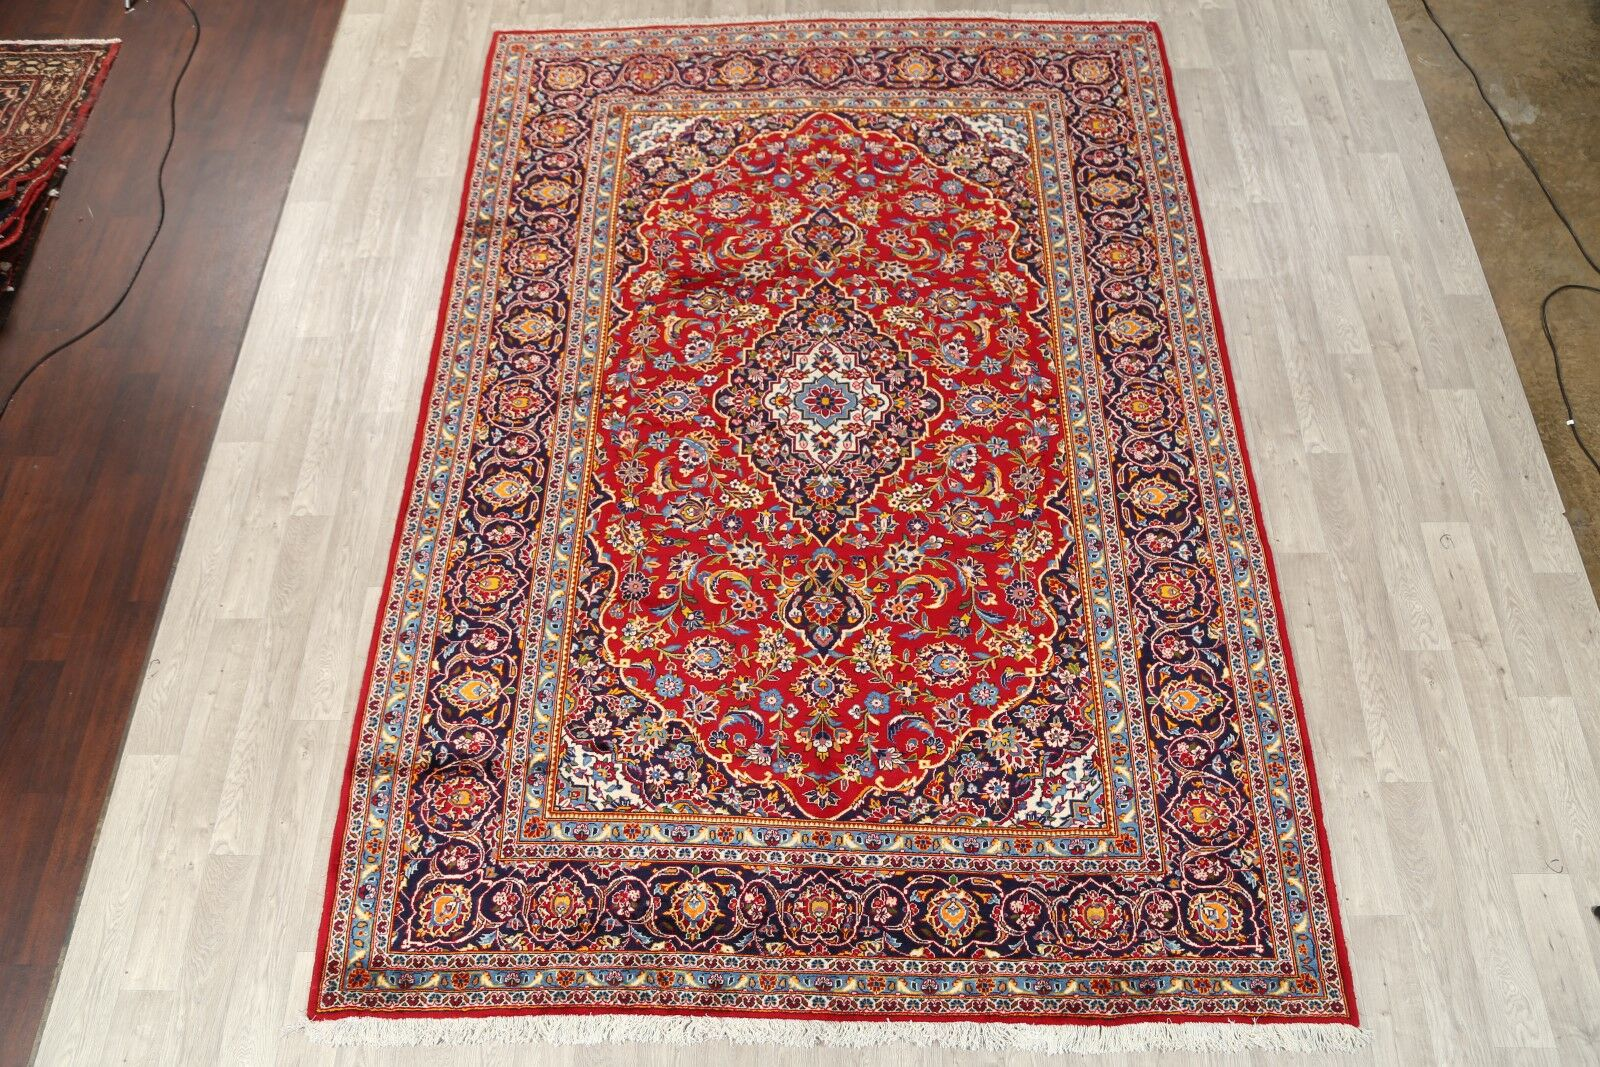 One-of-a-Kind Kashan Persian Classical Vintage Hand-Knotted 8'2